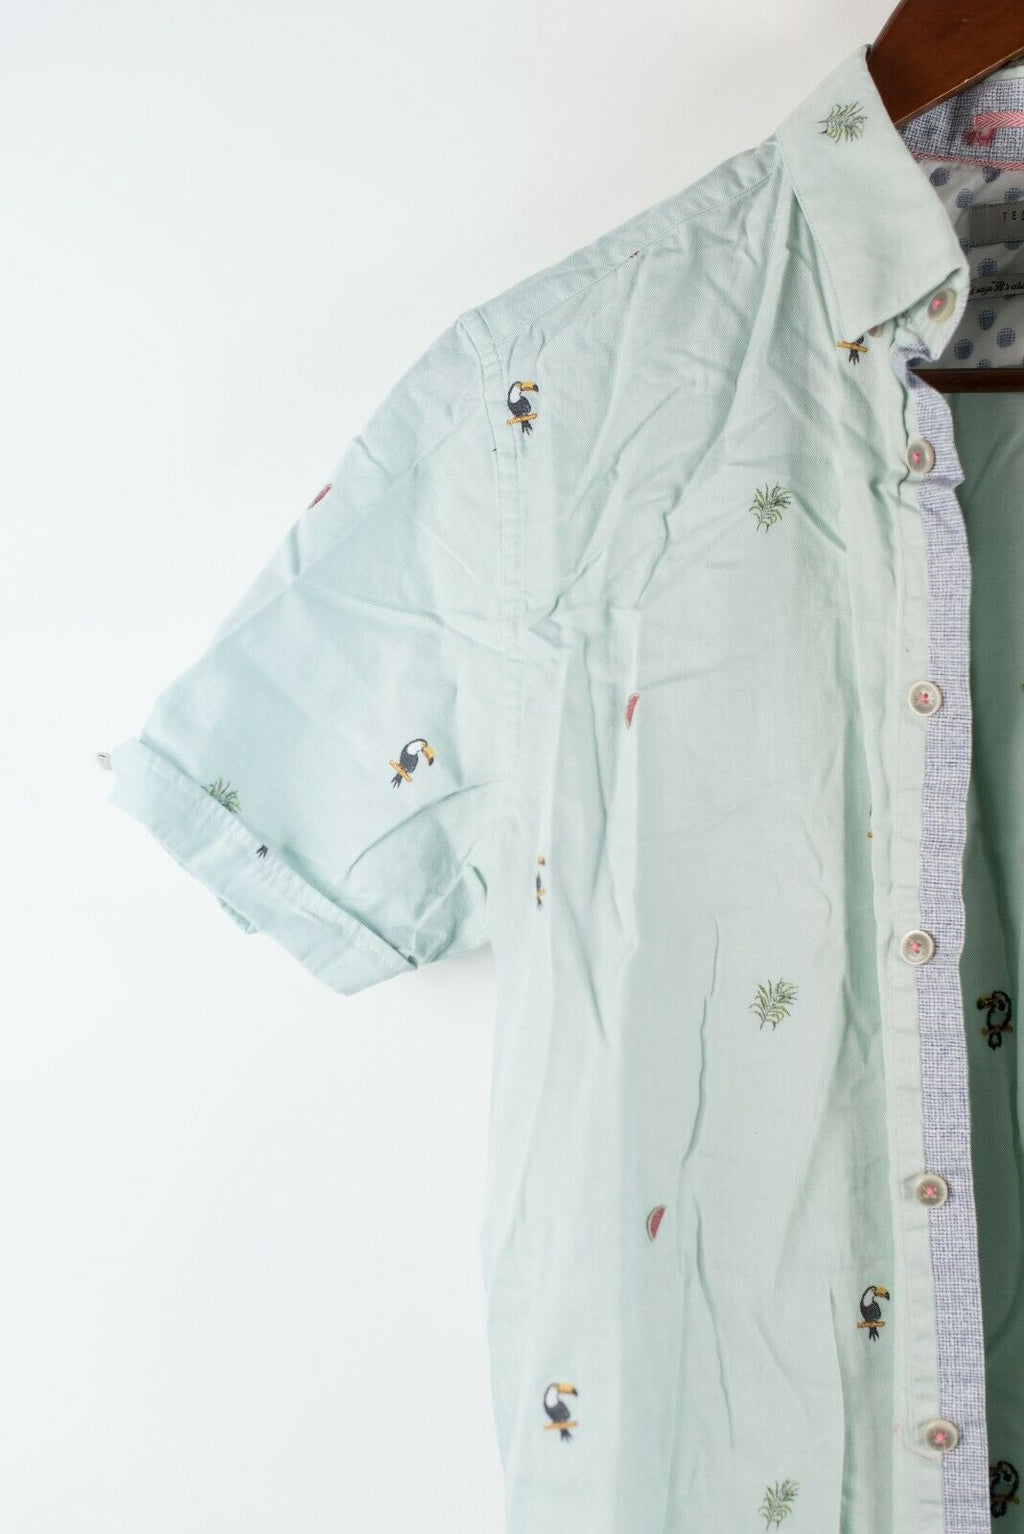 Ted Baker Mens Size 3 Mint Green Shirt S/S Button-Down Cotton Palm Tree Graphic